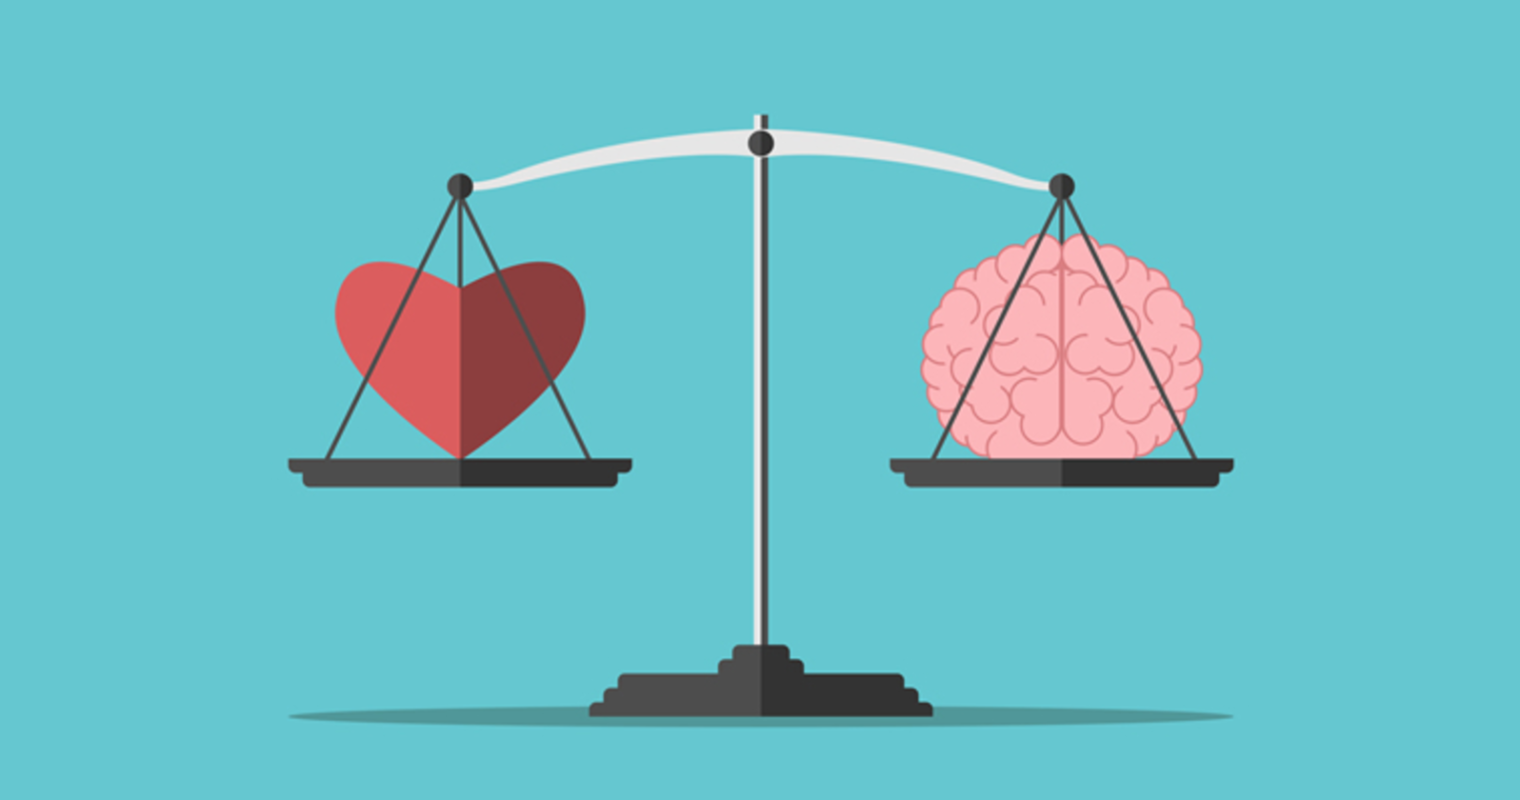 9 Emotional Hooks That Will Make Your Content 10x Better